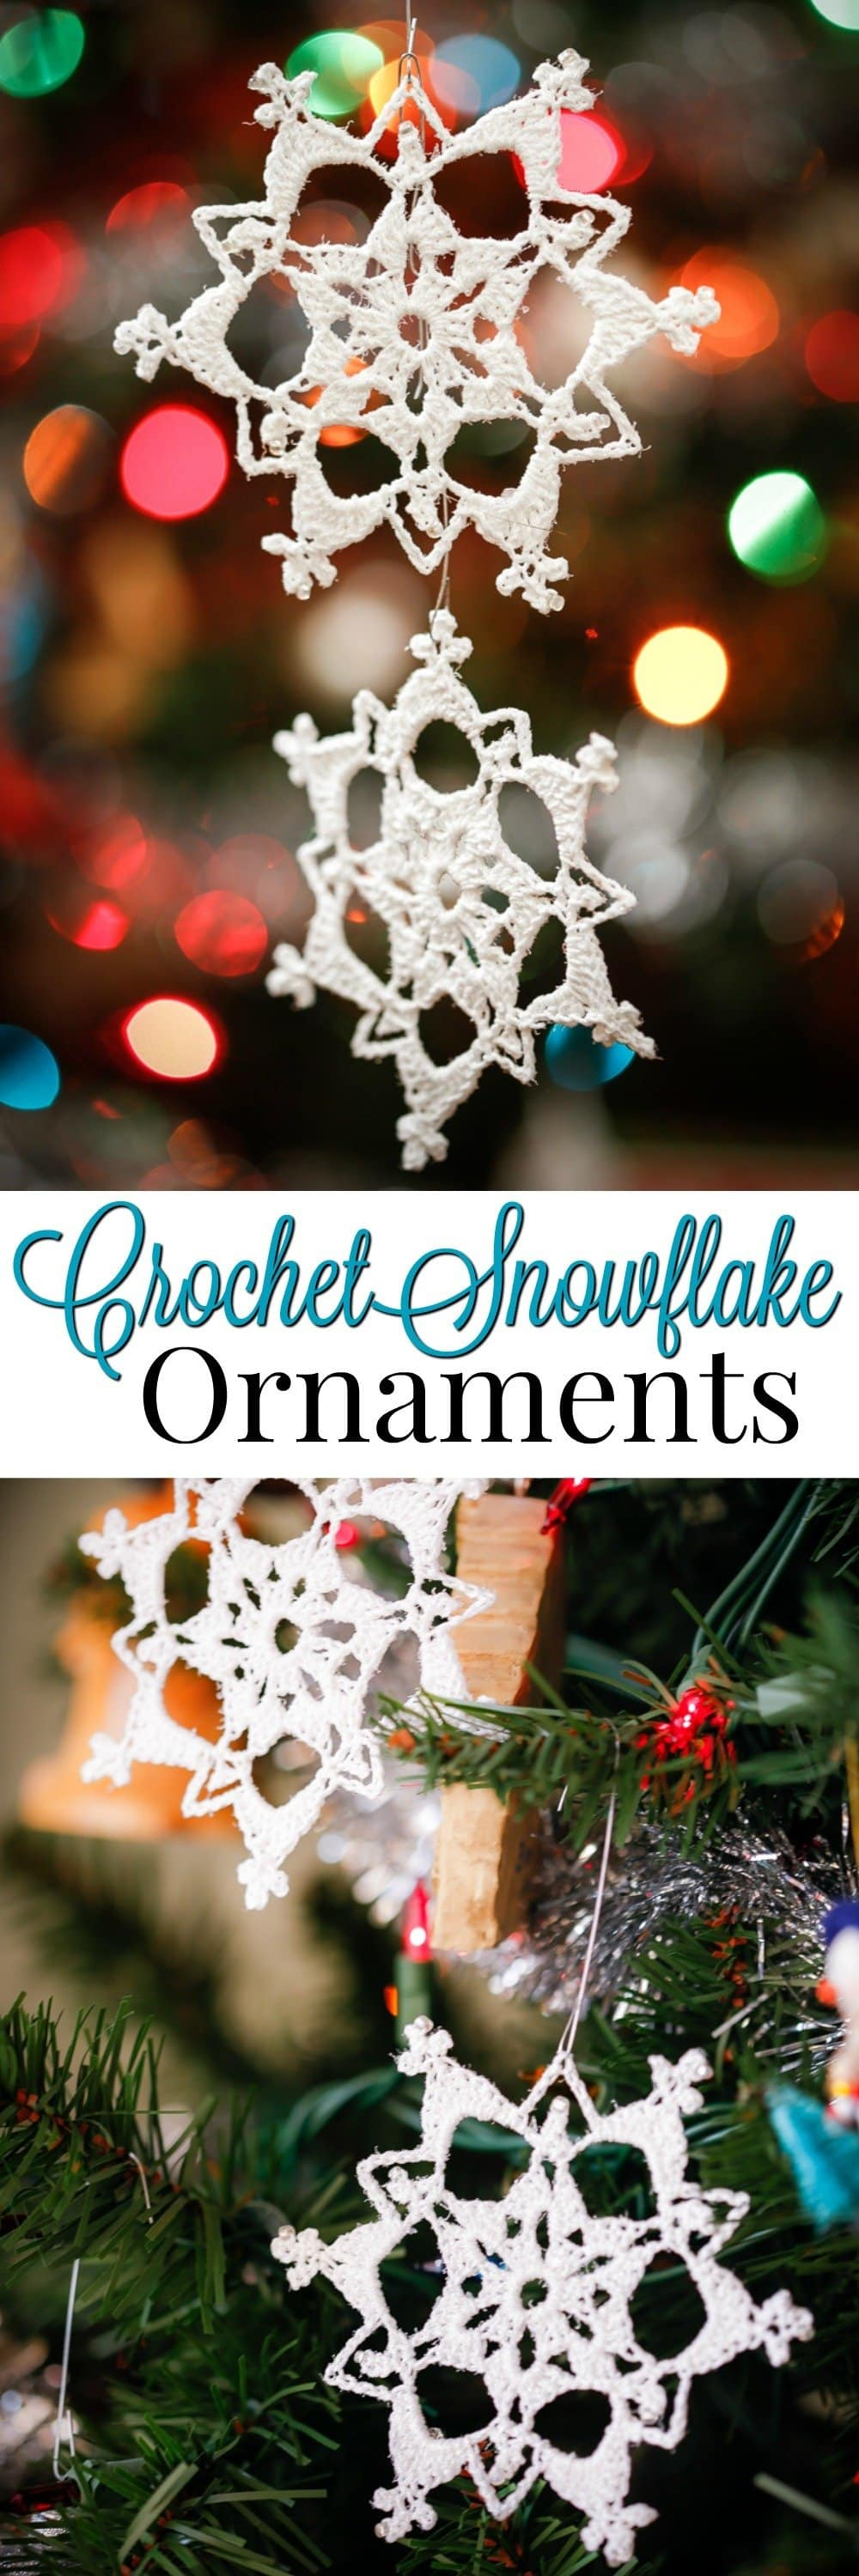 Learn to crochet beautiful Glittering Lace Crochet Snowflake Ornaments! With a free Step by Step crochet pattern with photos and instructions on how to stiffen, makes this an easy handmade ornament for your tree or a simple handmade gift for someone special.